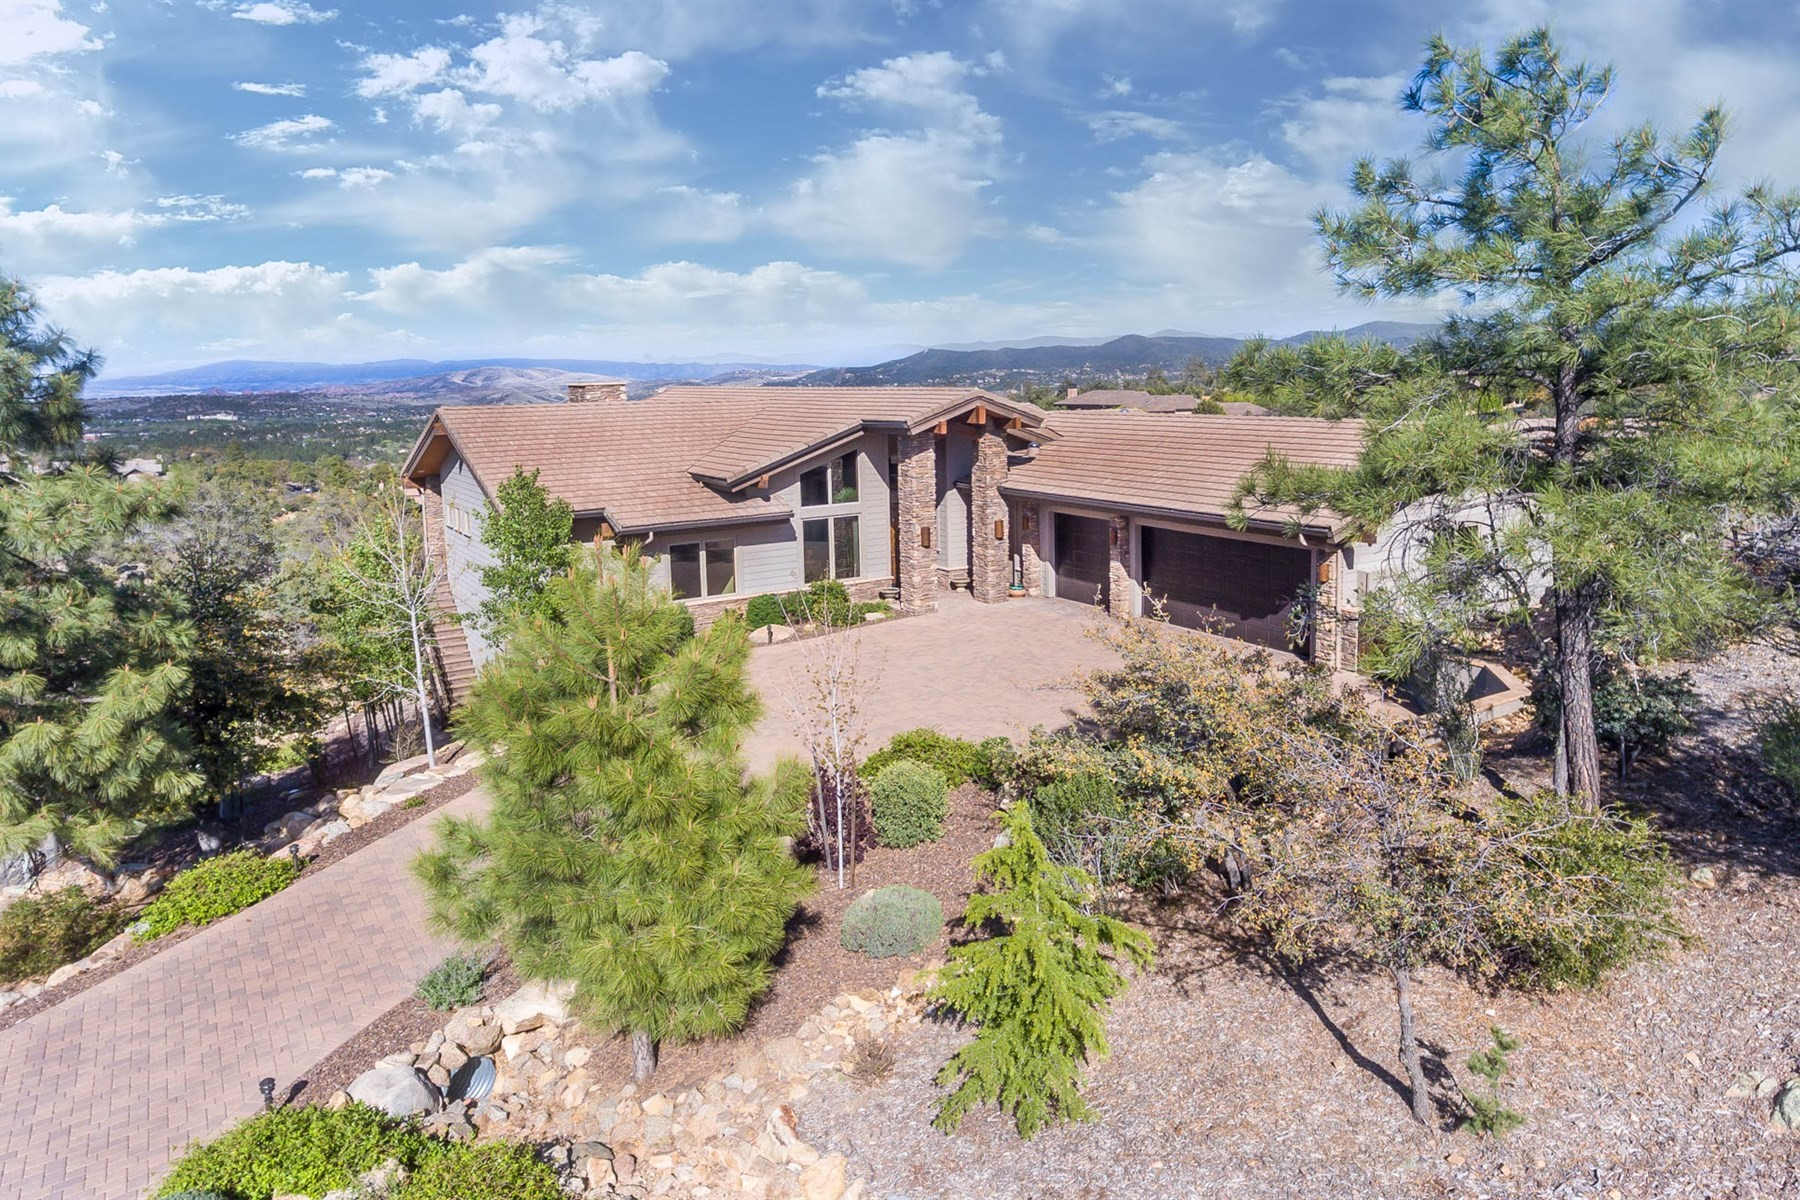 Single Family Home for Sale at Custom two story home with amazing views 871 Mavrick Mountain Trl Prescott, Arizona, 86303 United States